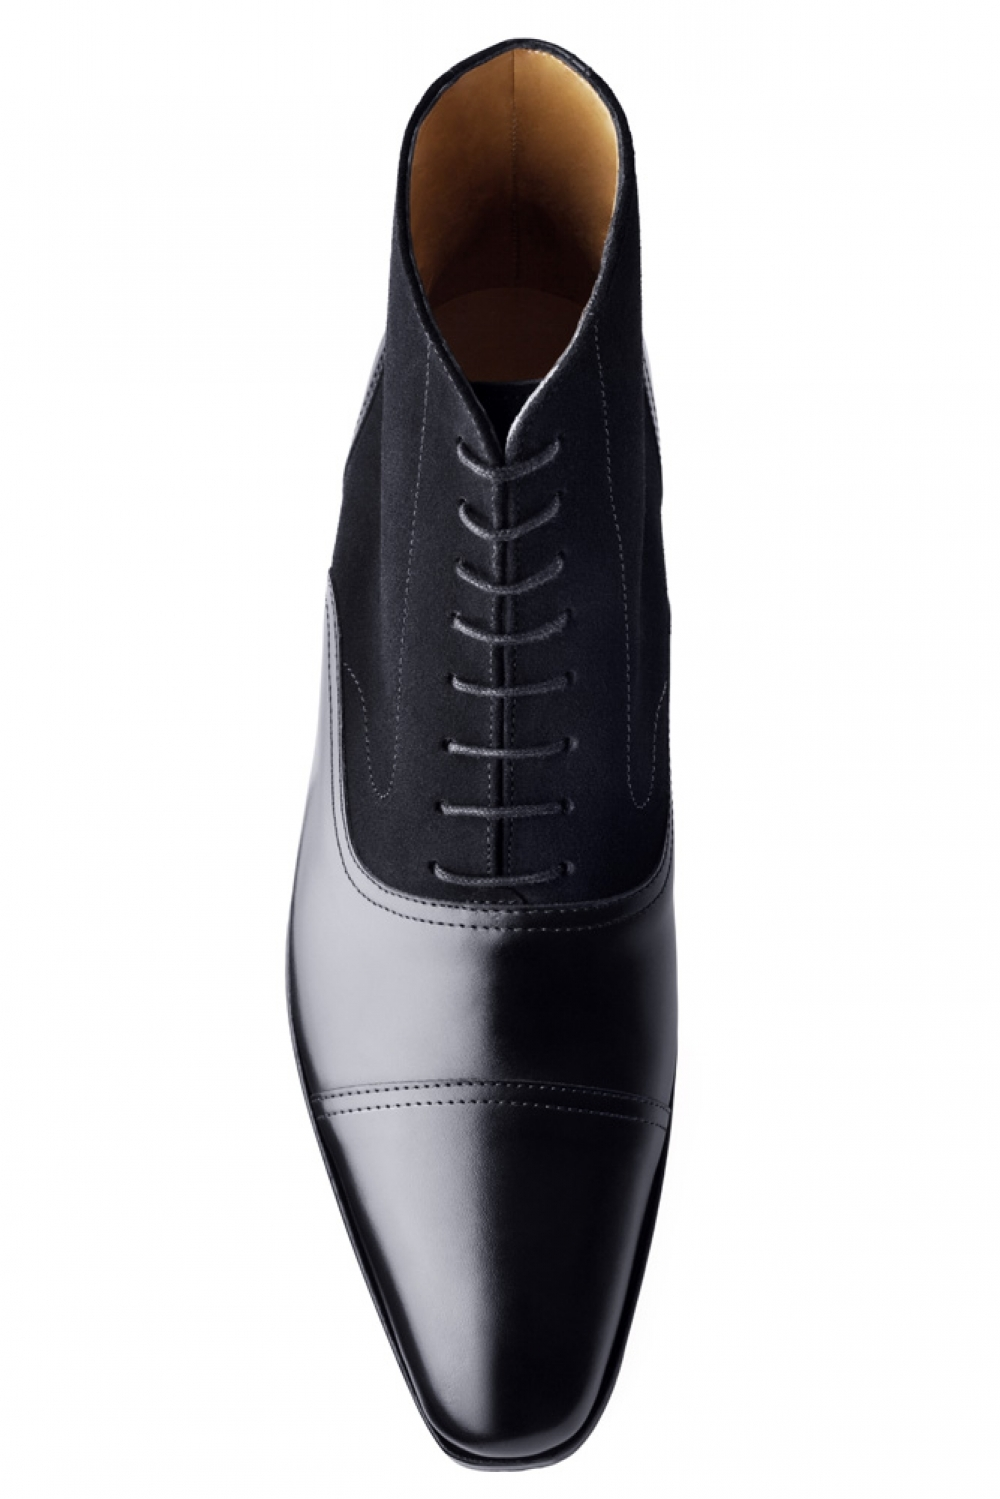 Mens Ankle Dress Shoes